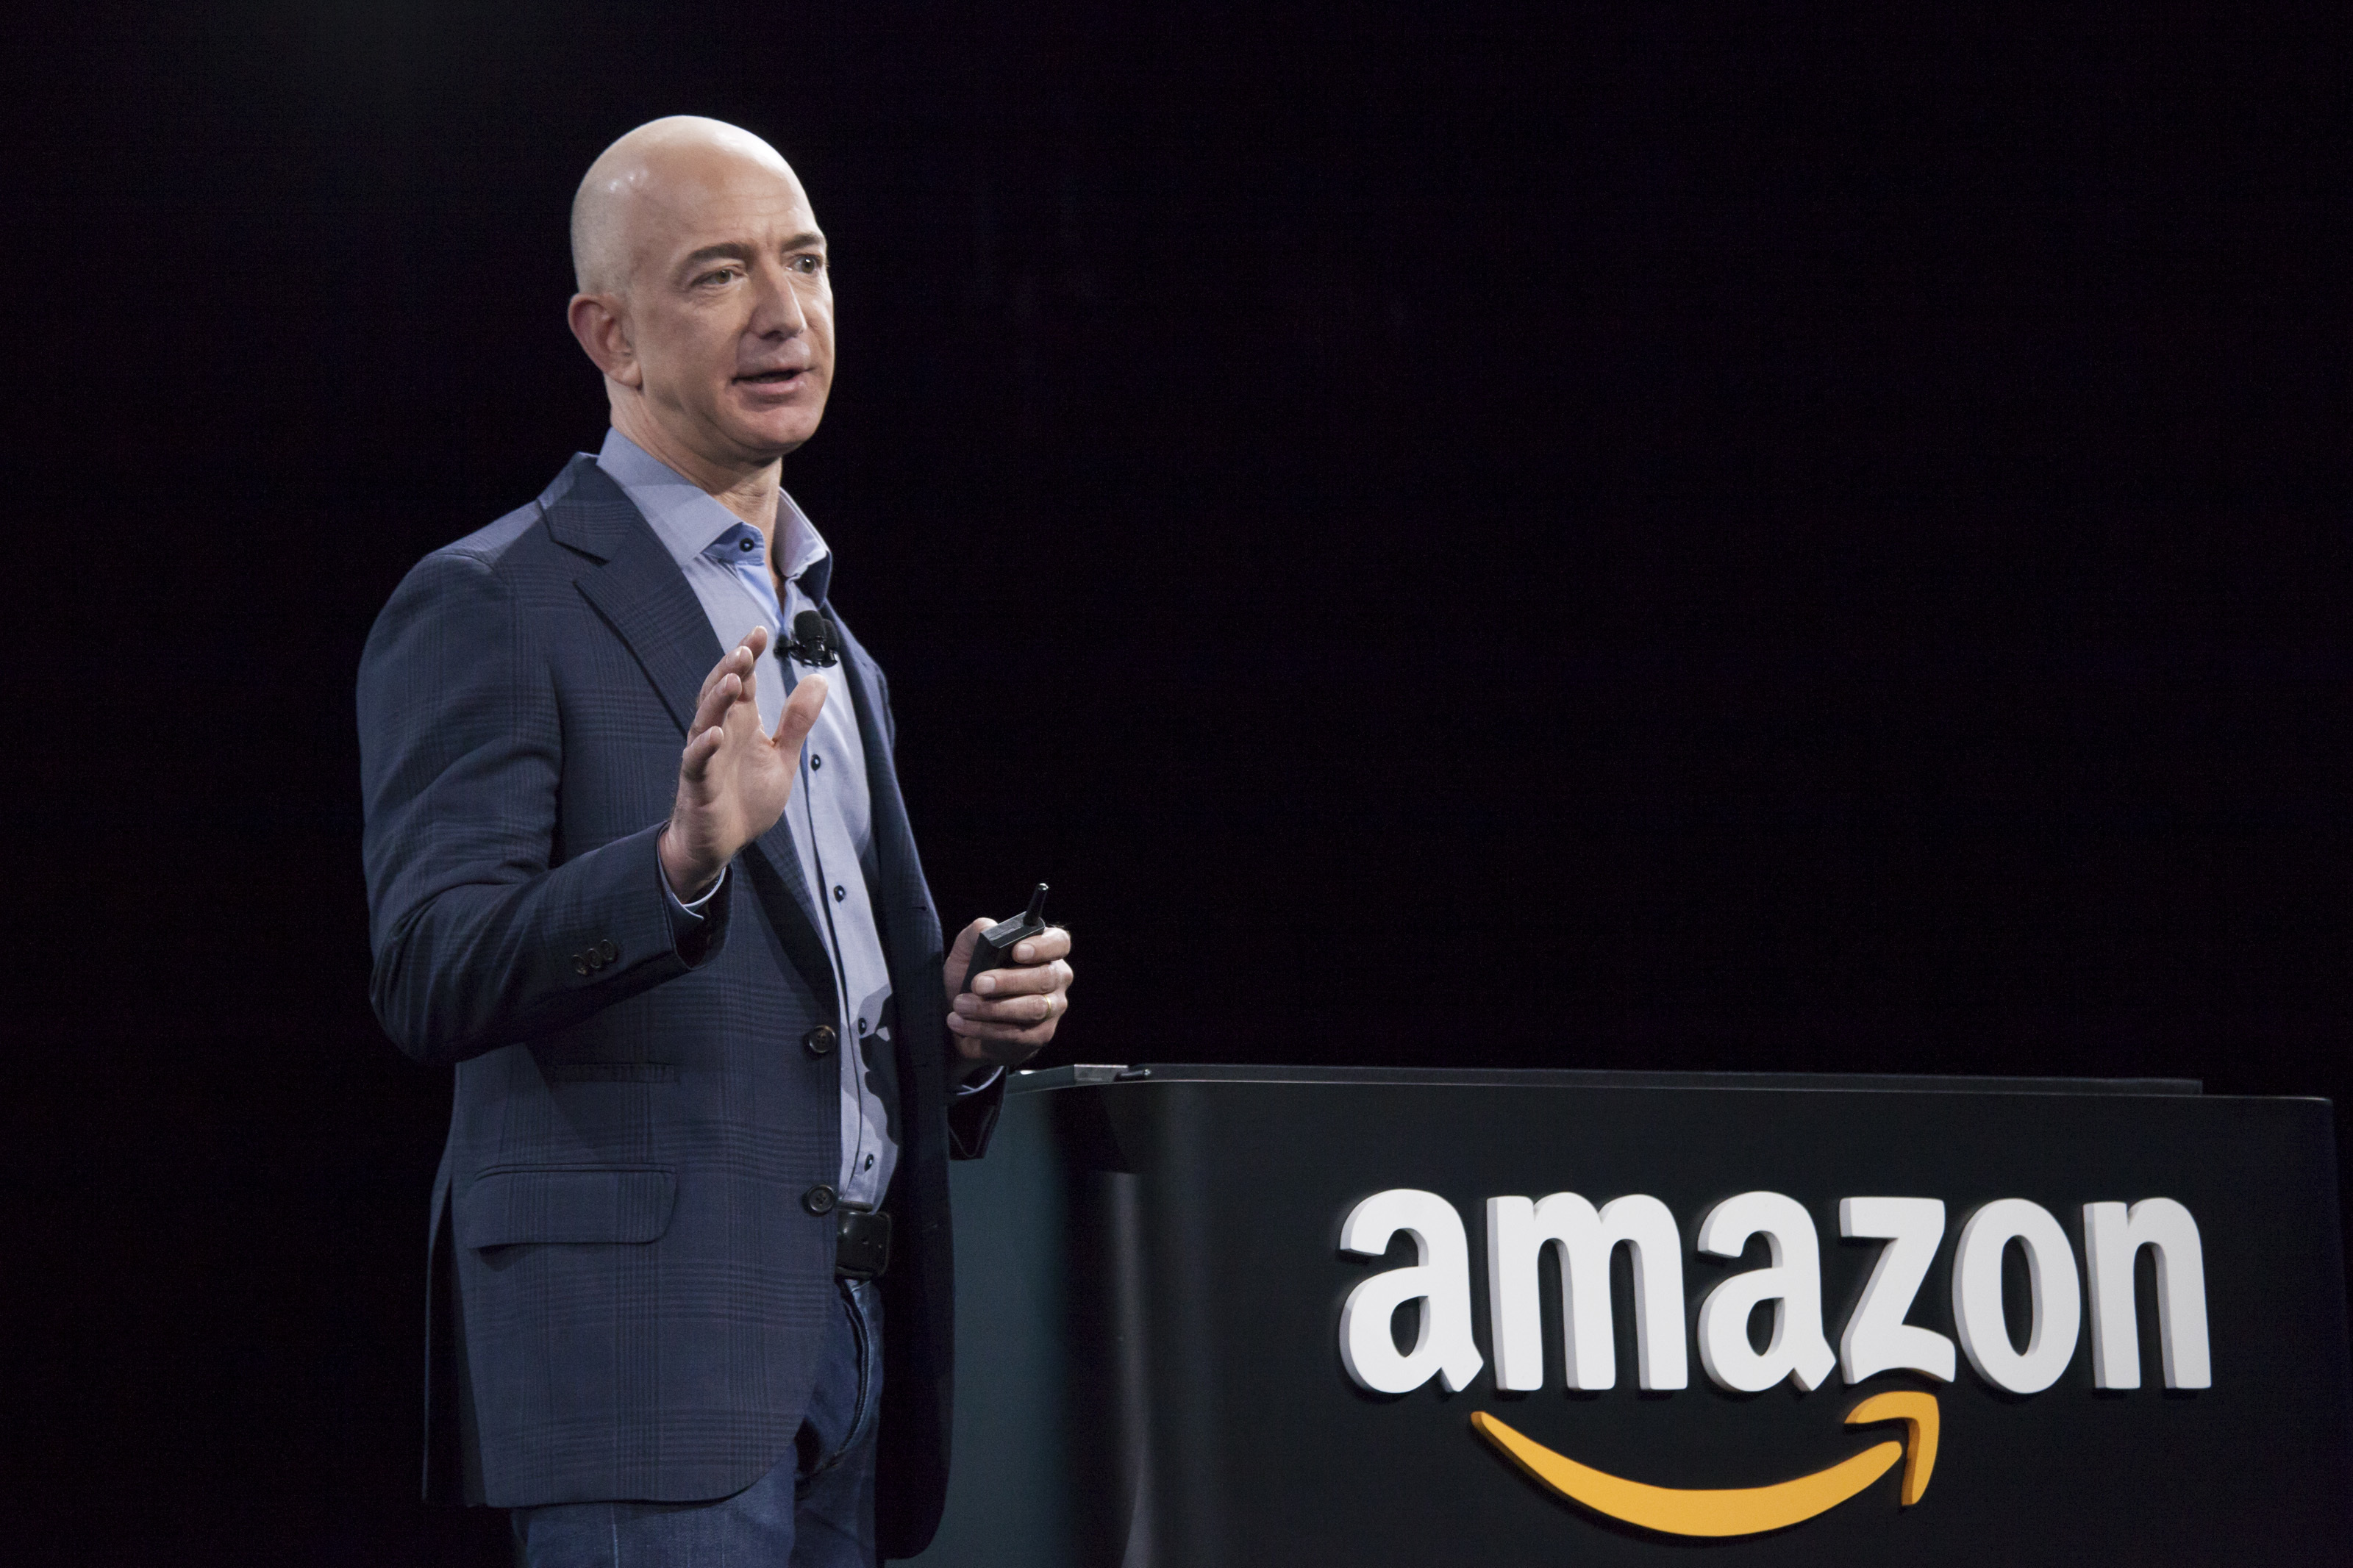 Amazonfounder and CEO Jeff Bezos. Several Udemy instructors say they have been approached by Amazon to teach on an unannounced education project.